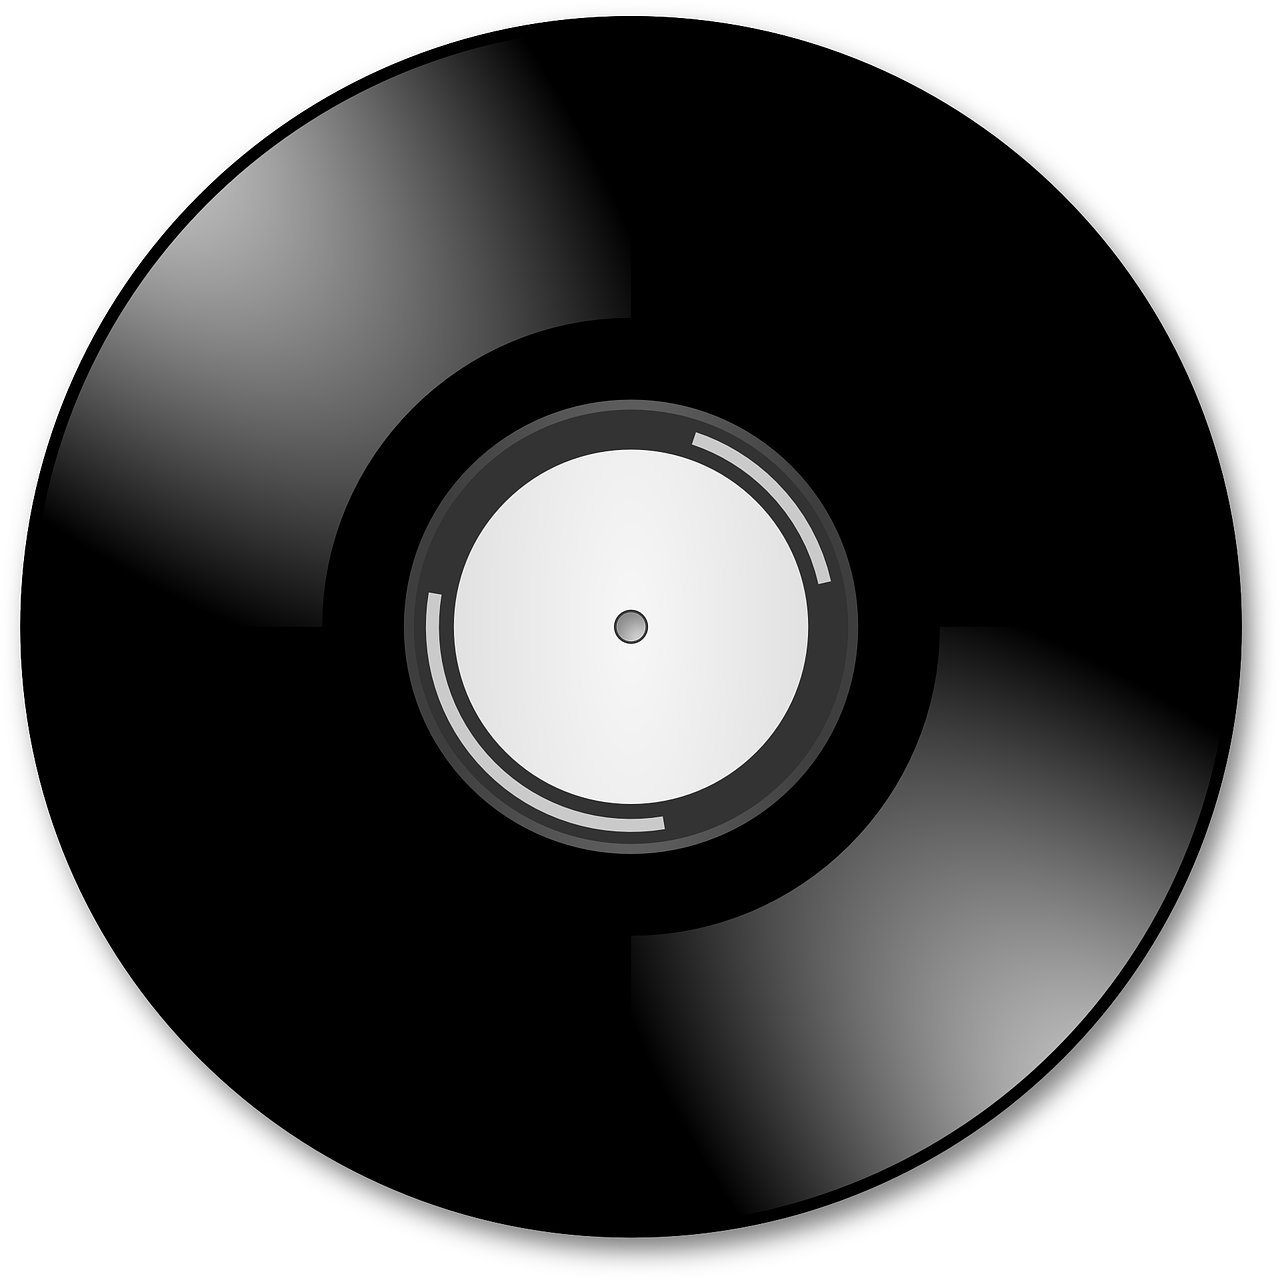 disc,audio,vinyl,record,sound,turntable,music,vintage,free vector graphics,free pictures, free photos, free images, royalty free, free illustrations